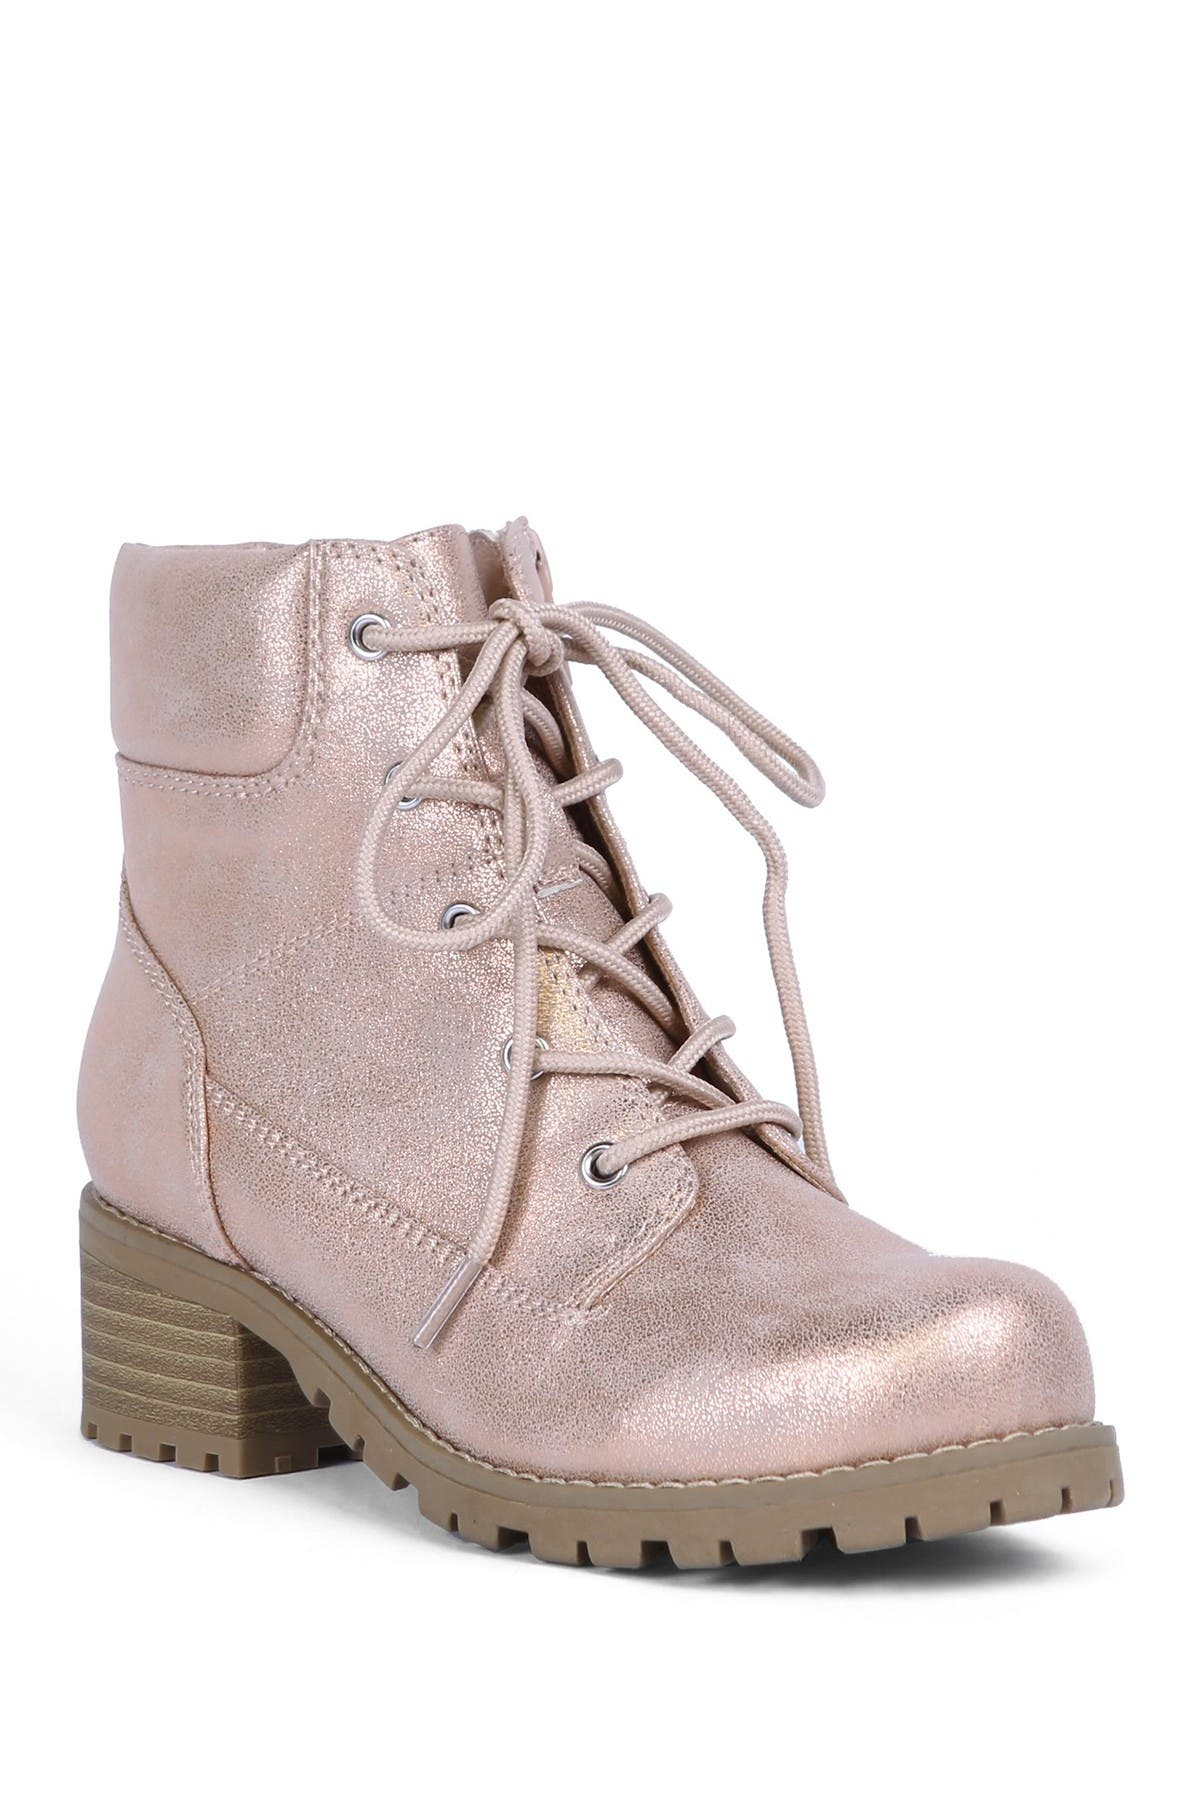 Image of DV DOLCE VITA Lace-Up Combat Boot